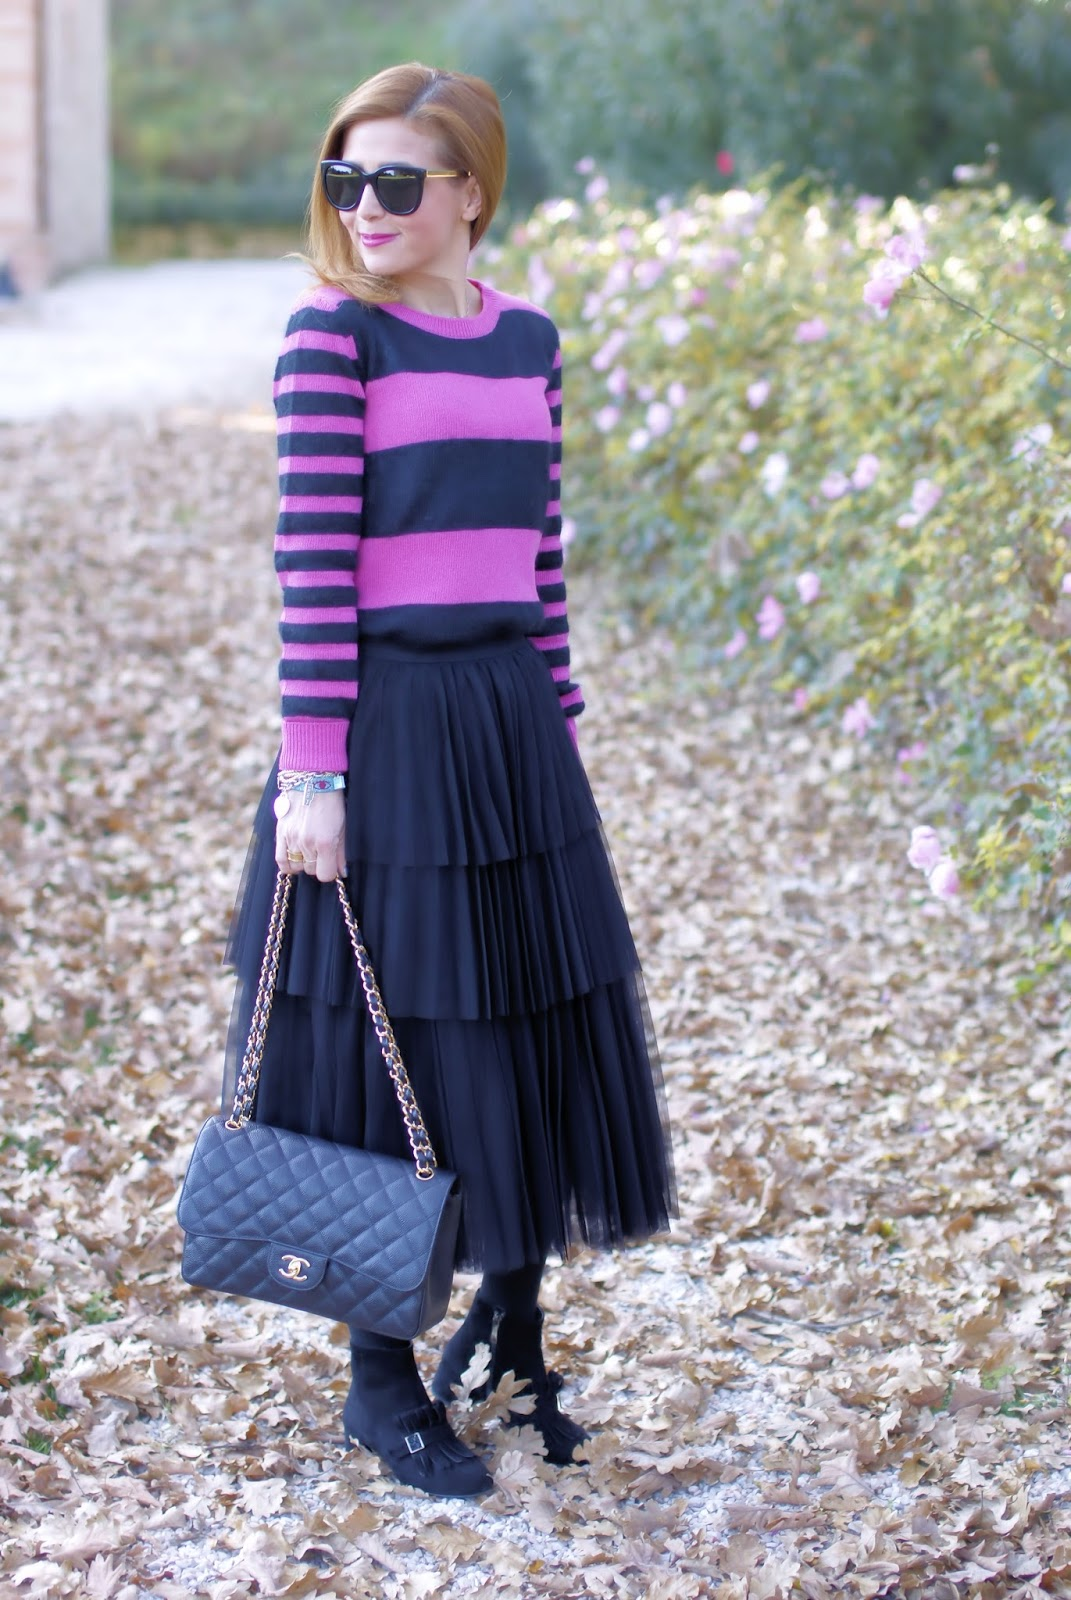 How to wear a black ruffle tulle skirt